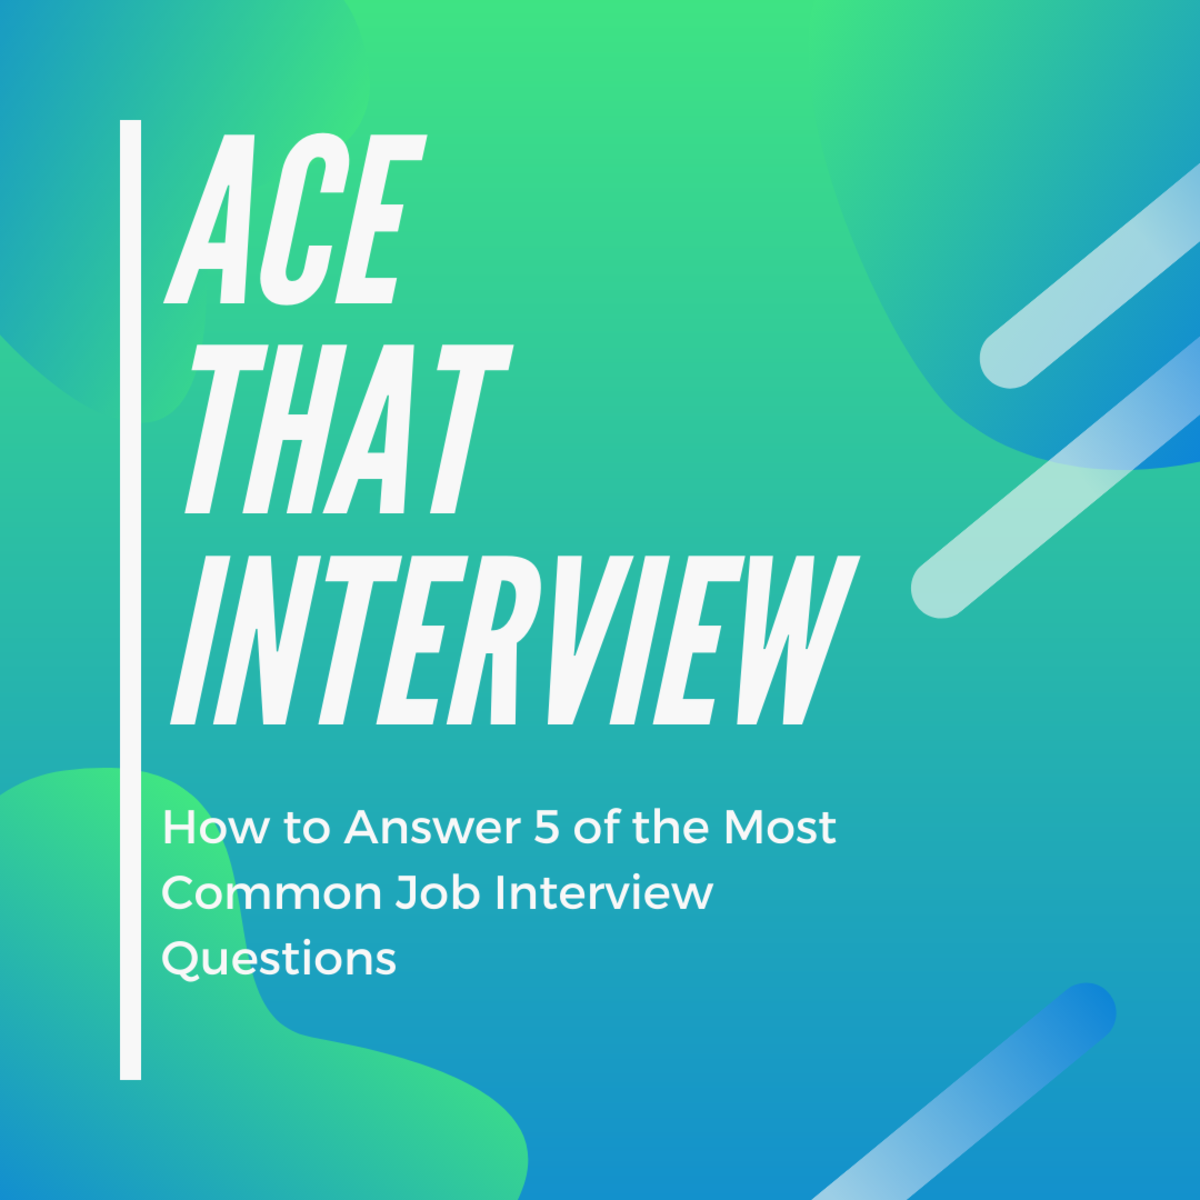 Learn how to answer some of the most common interview questions.